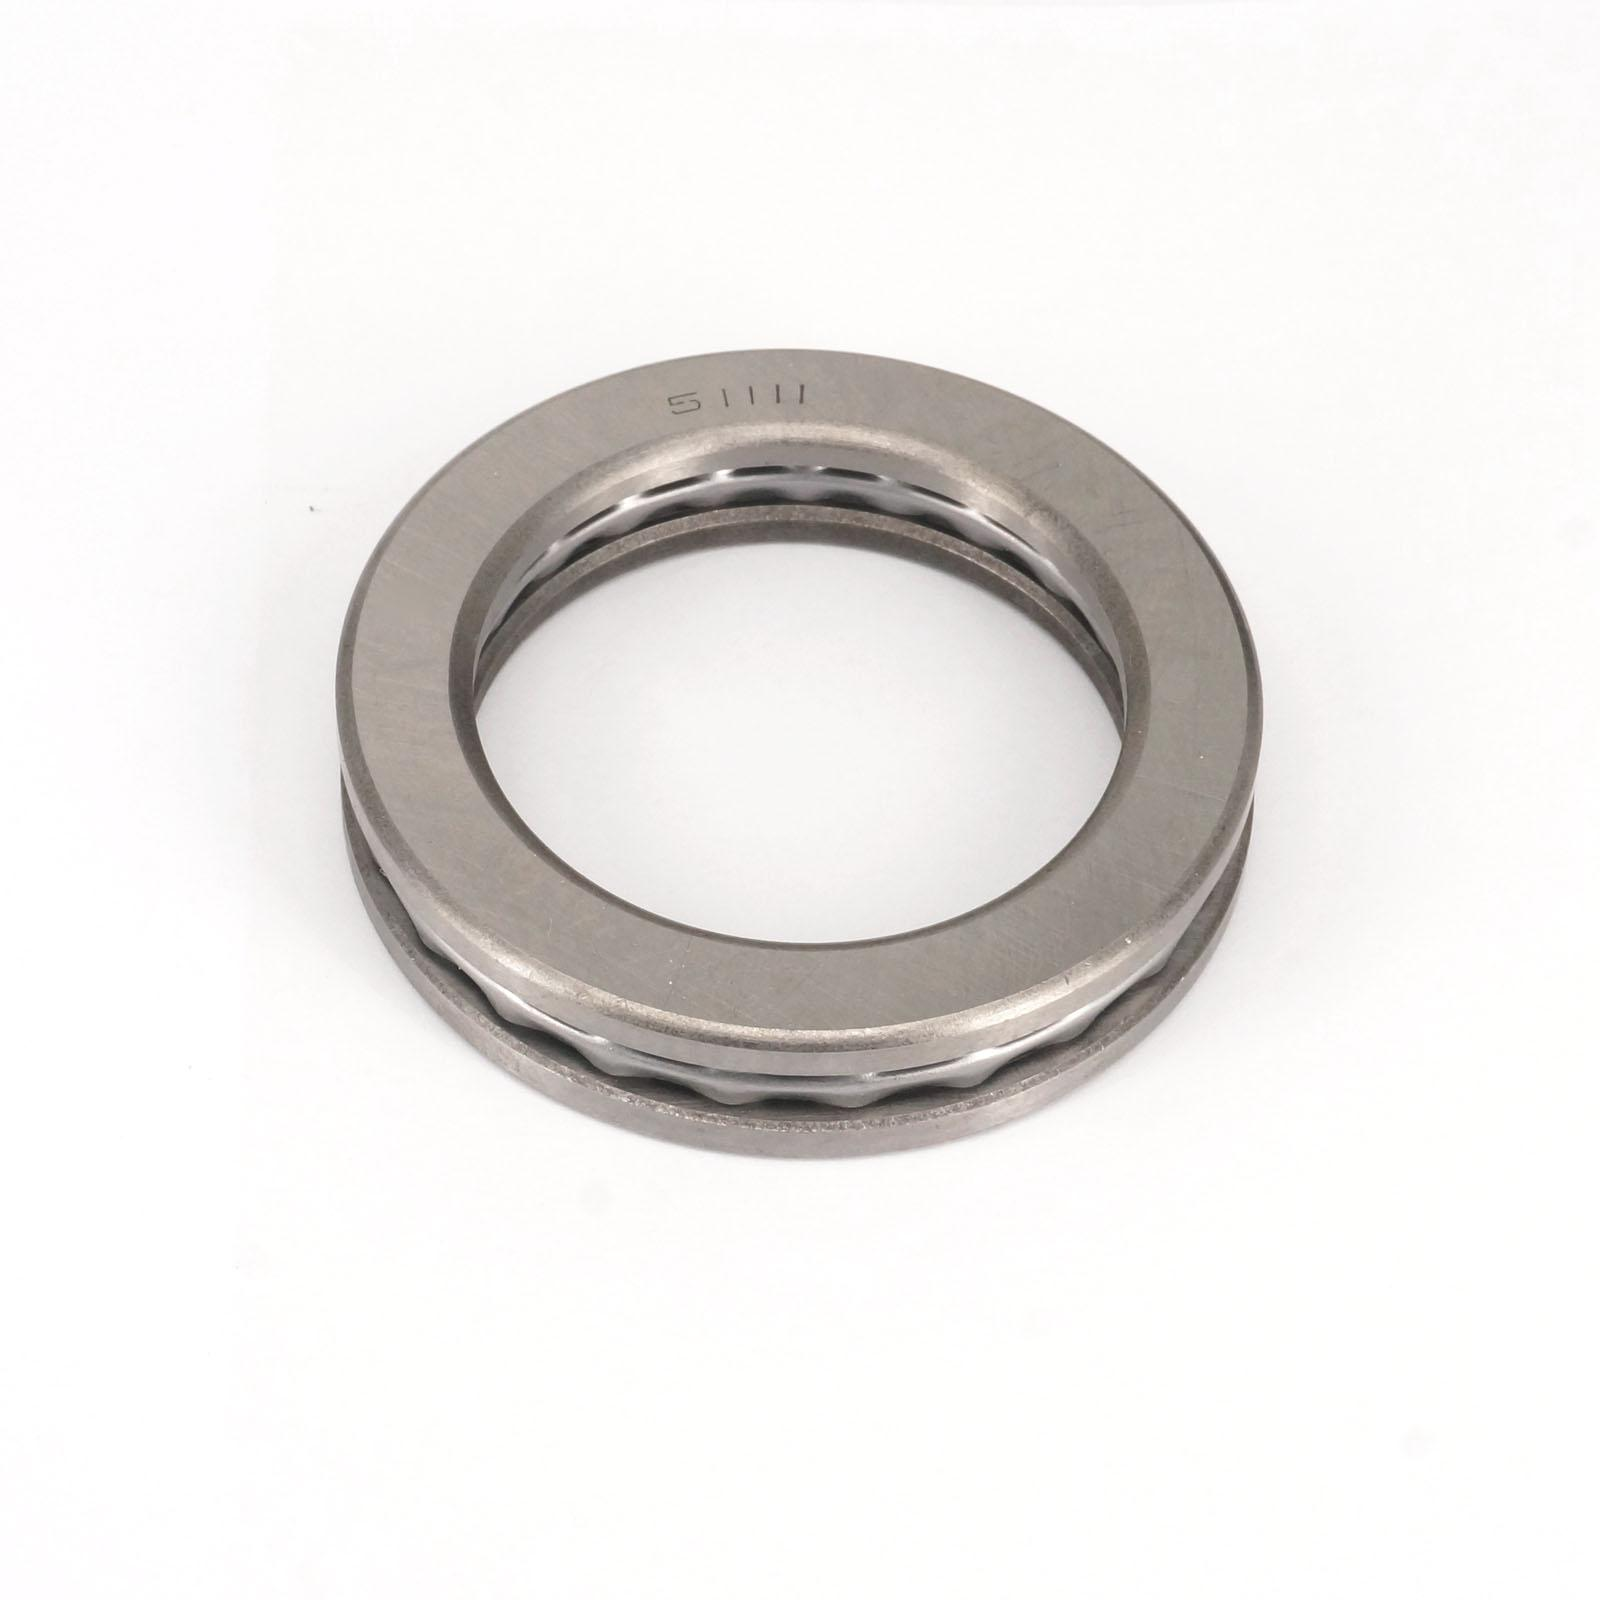 ABEC-1 51111 55 x 78 x 16mm Axial Ball Thrust Bearing 2 Steel Races + 1 Cage